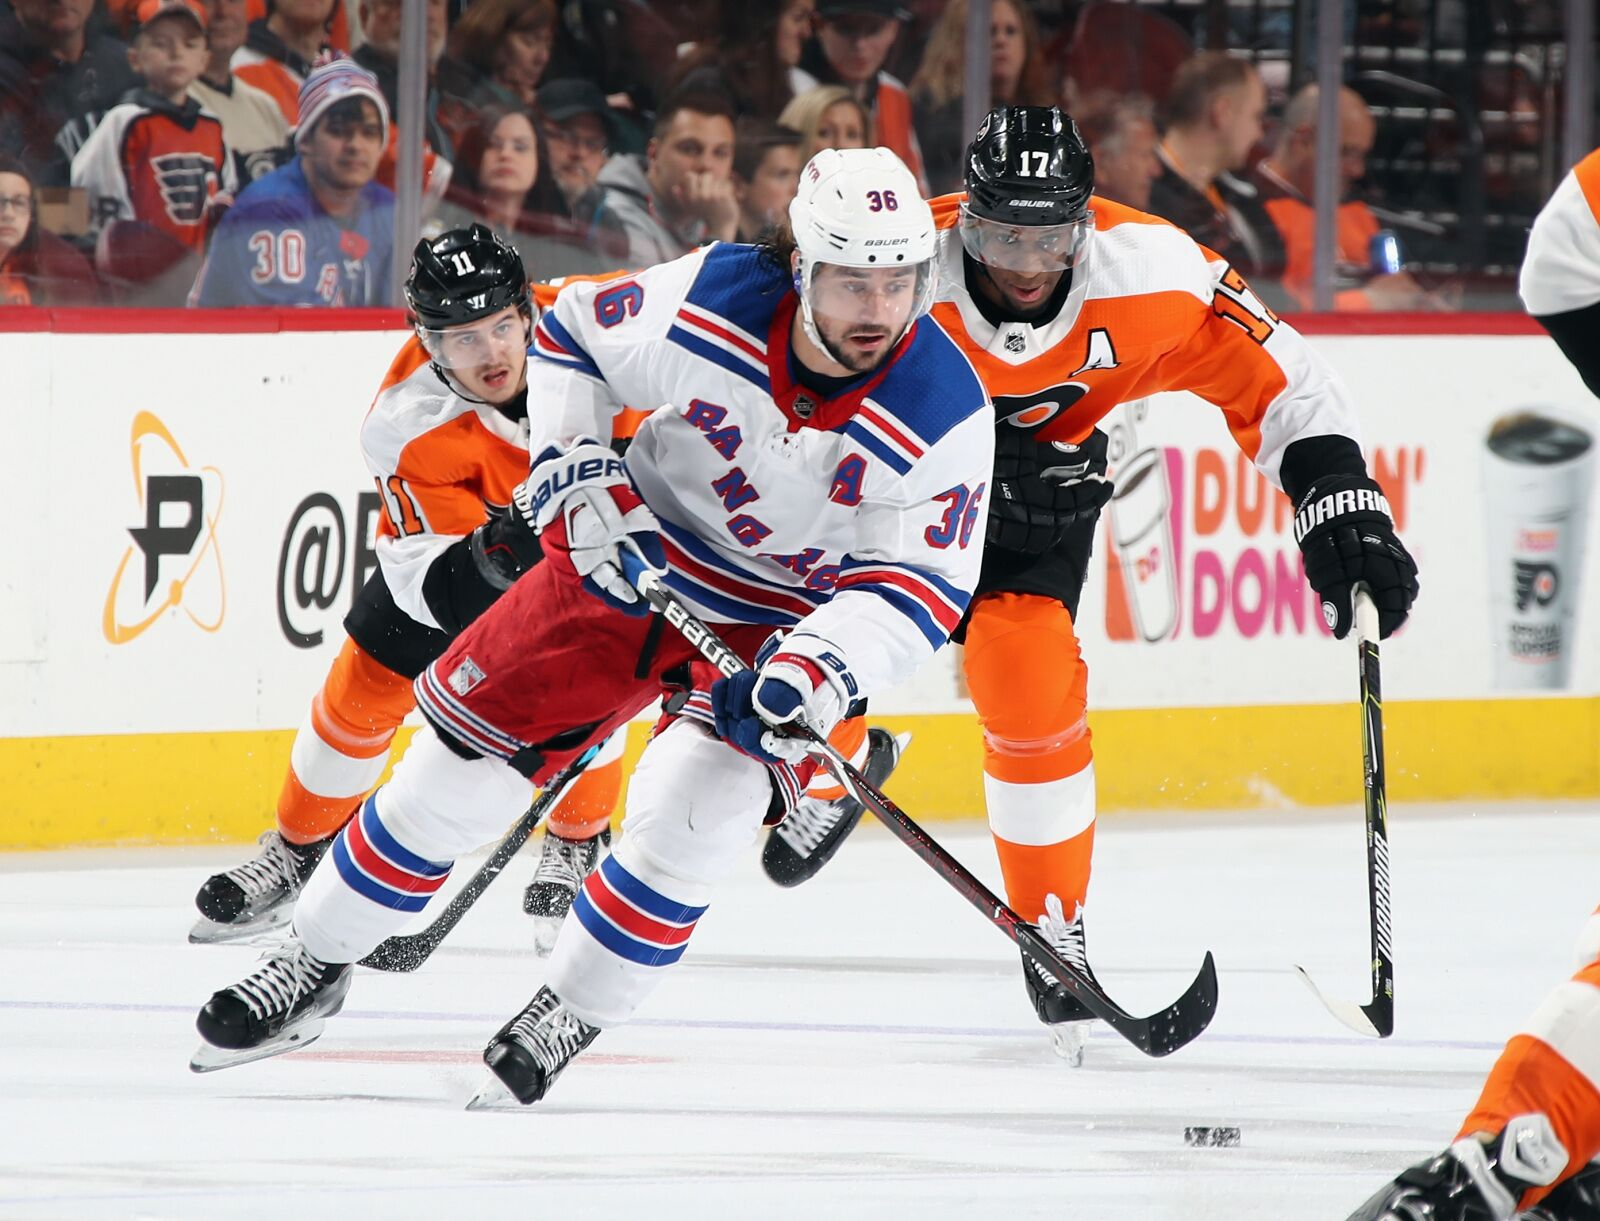 943405992-new-york-rangers-v-philadelphia-flyers.jpg